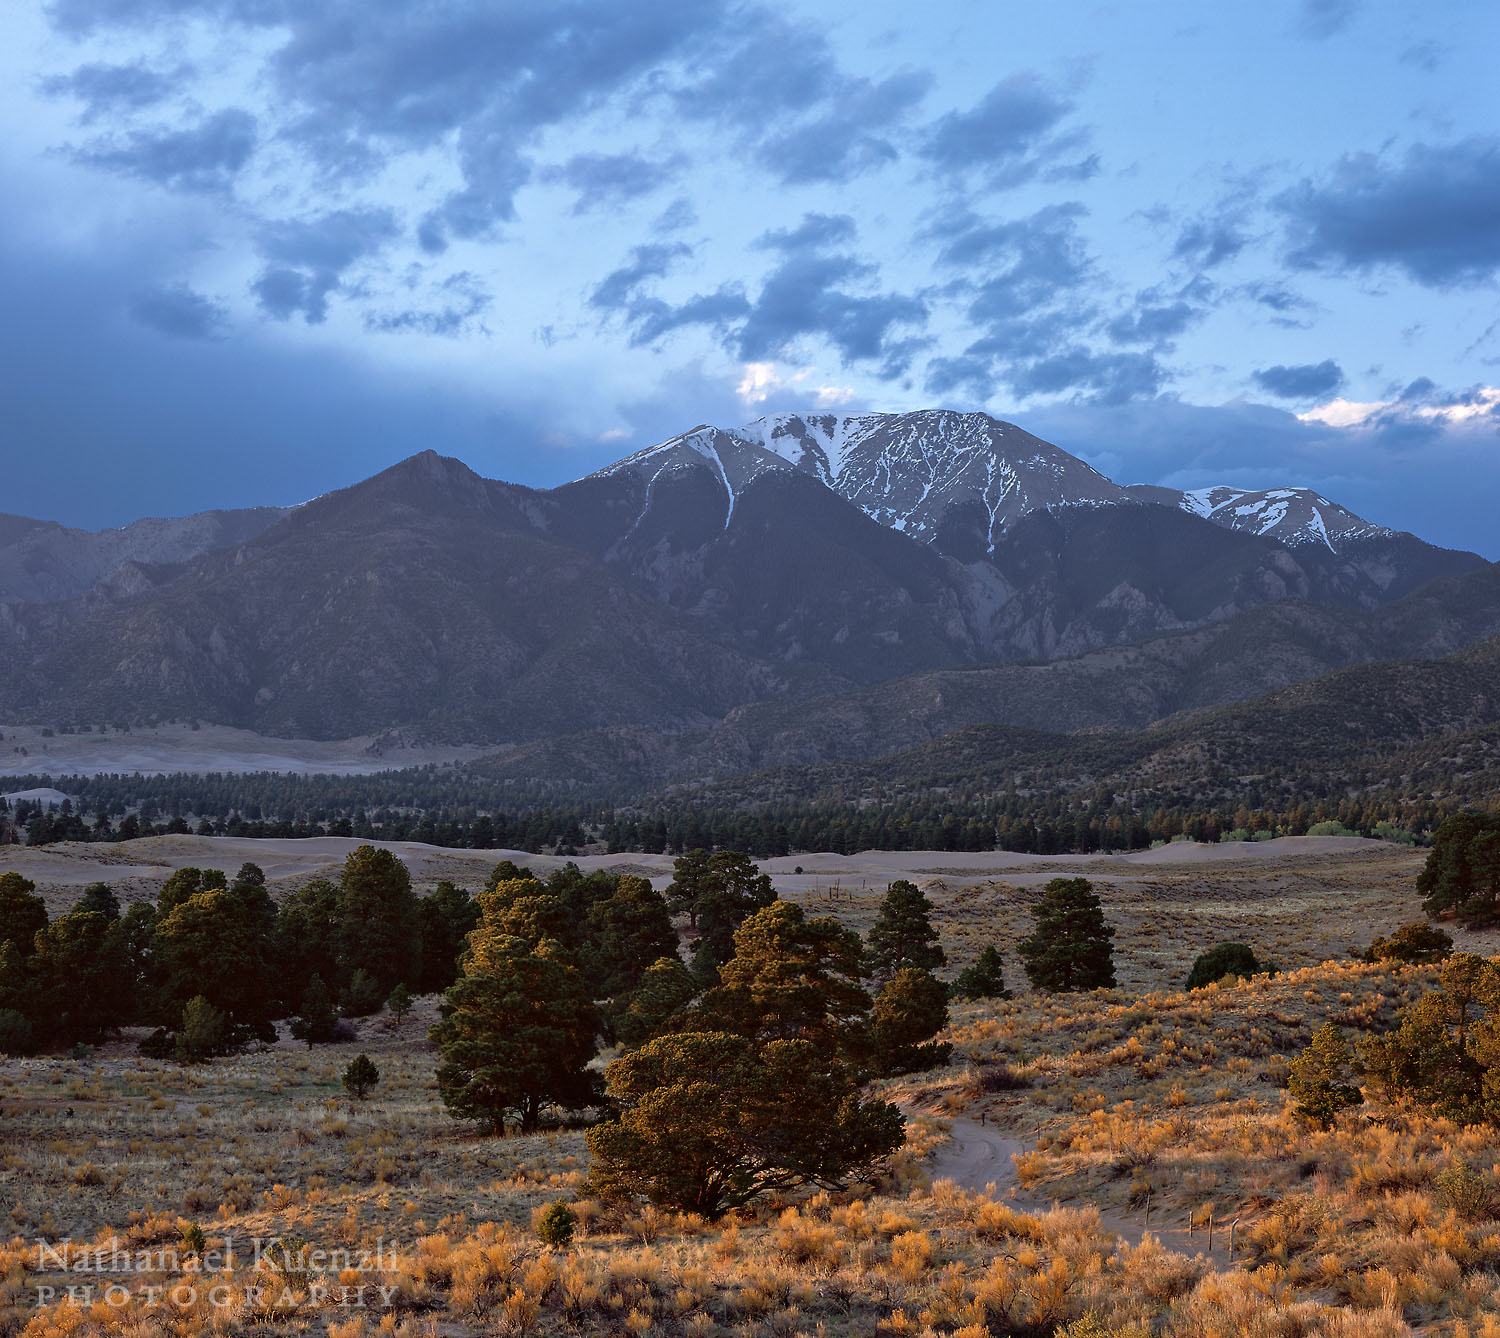 Sangre De Cristo Mountains, Great Sand Dunes NP, Colorado, May 2009